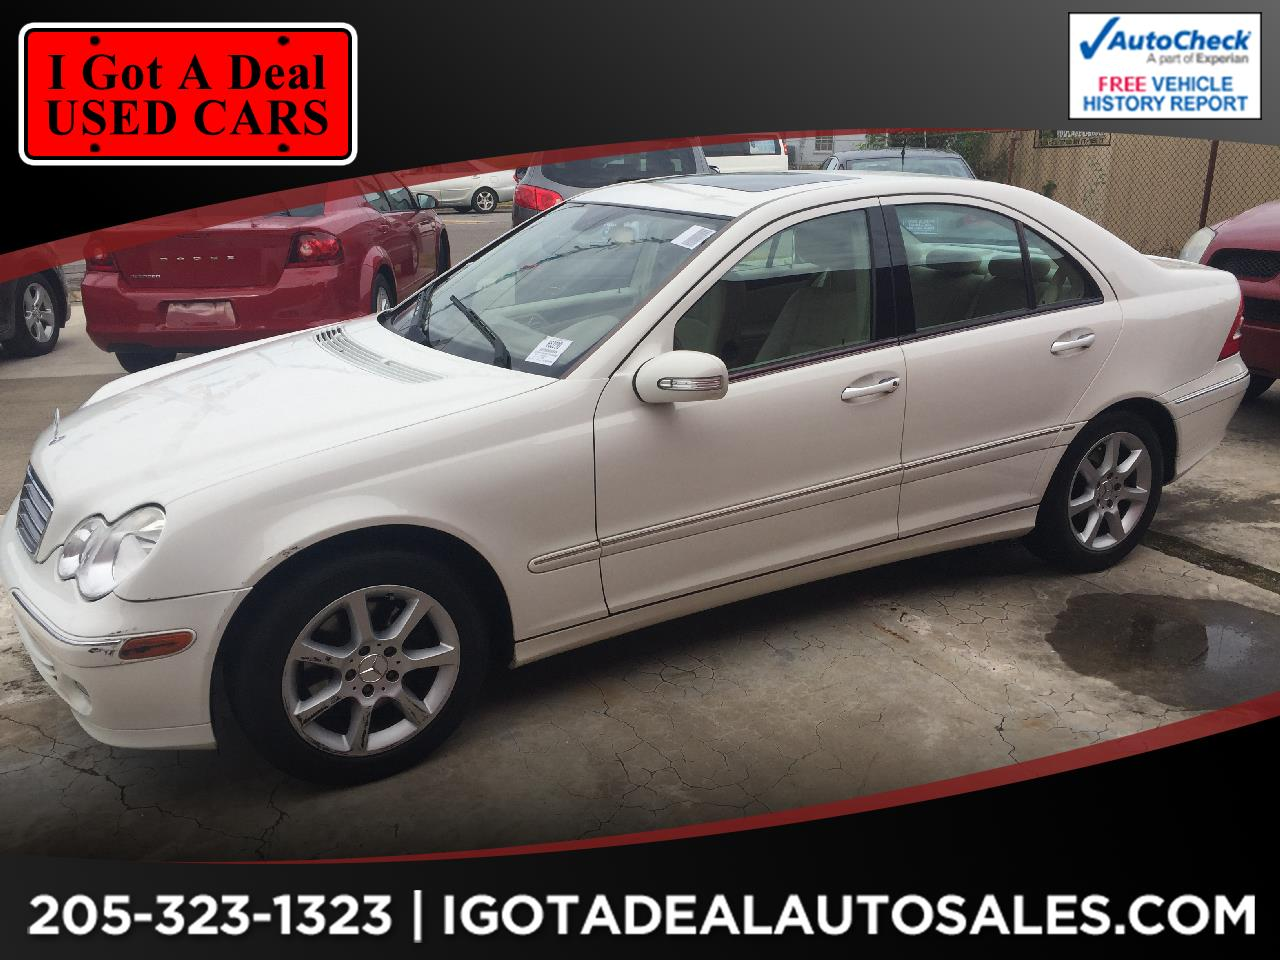 2007 Mercedes-Benz C-Class 4dr Sdn 3.0L Luxury RWD